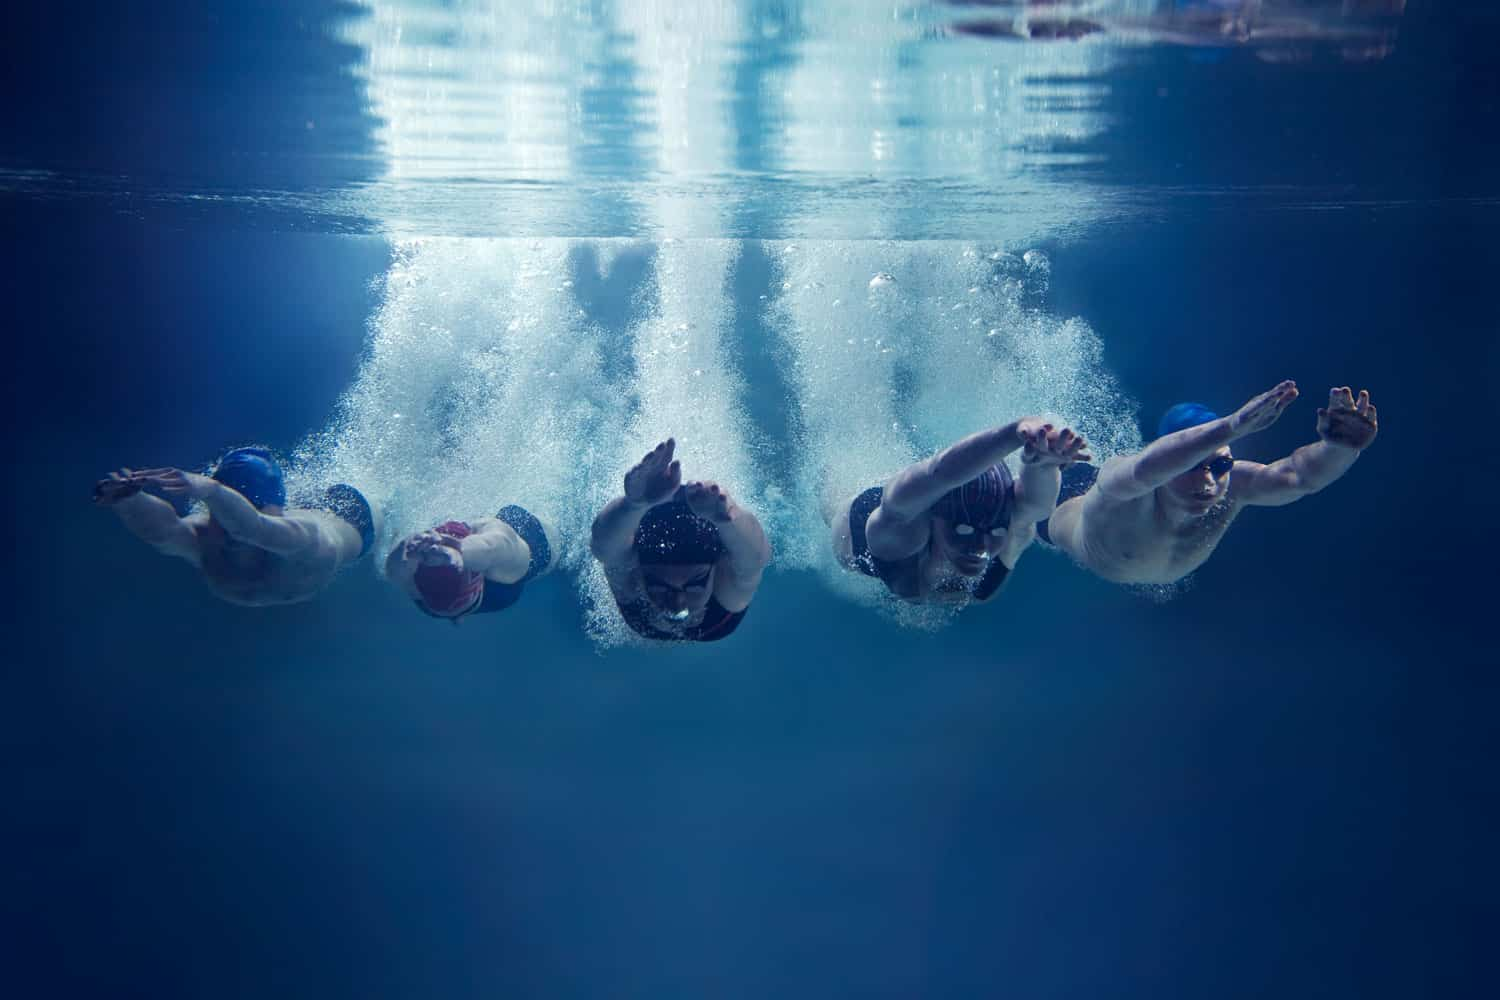 A group of swimmers diving together on an Olympic swimming pool